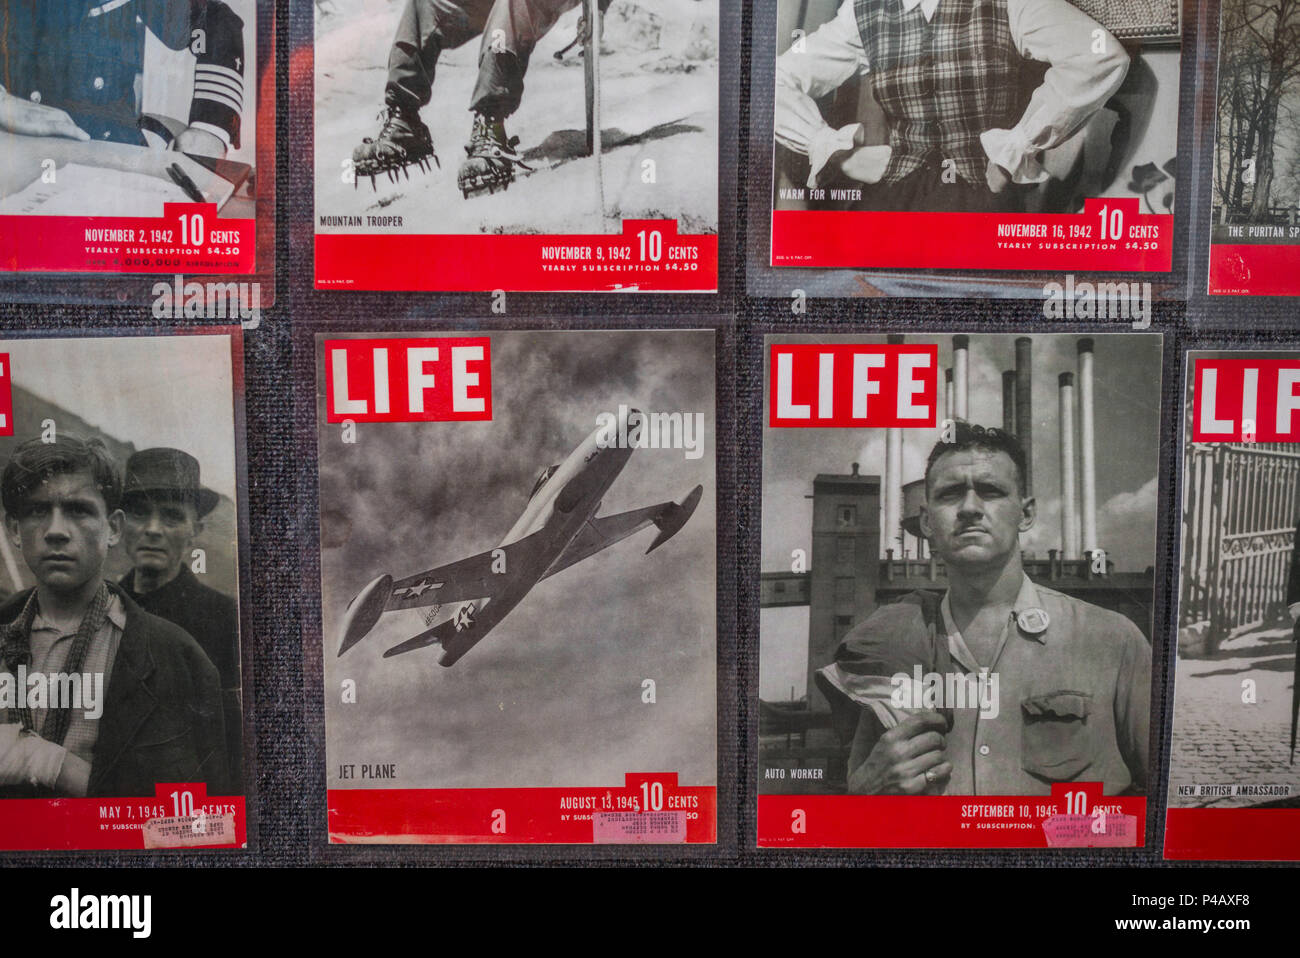 USA, New Jersey, Rio Grande, Naval Air Station Wildwood Aviation Museum, 1940s-era covers of Life Magazine - Stock Image